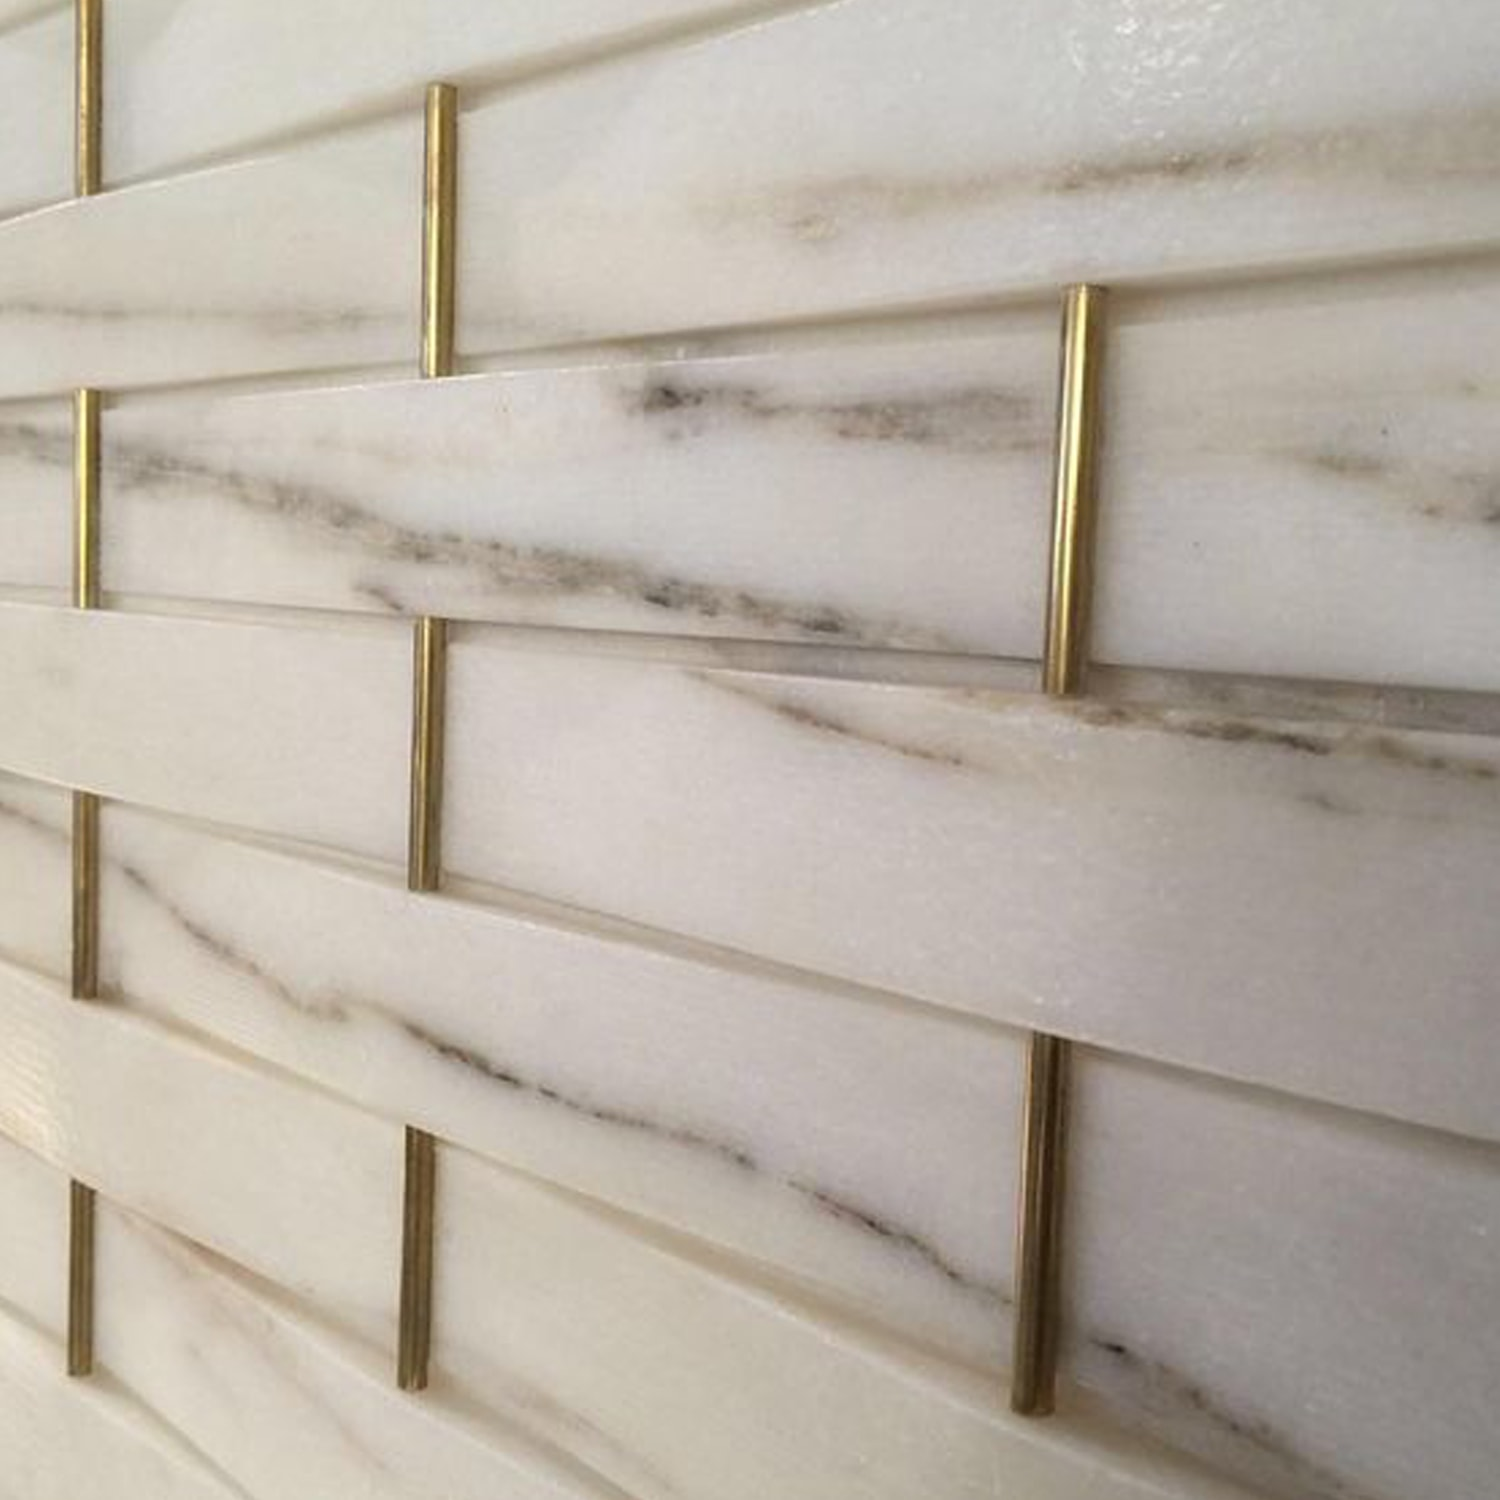 marble and brass tile backsplash